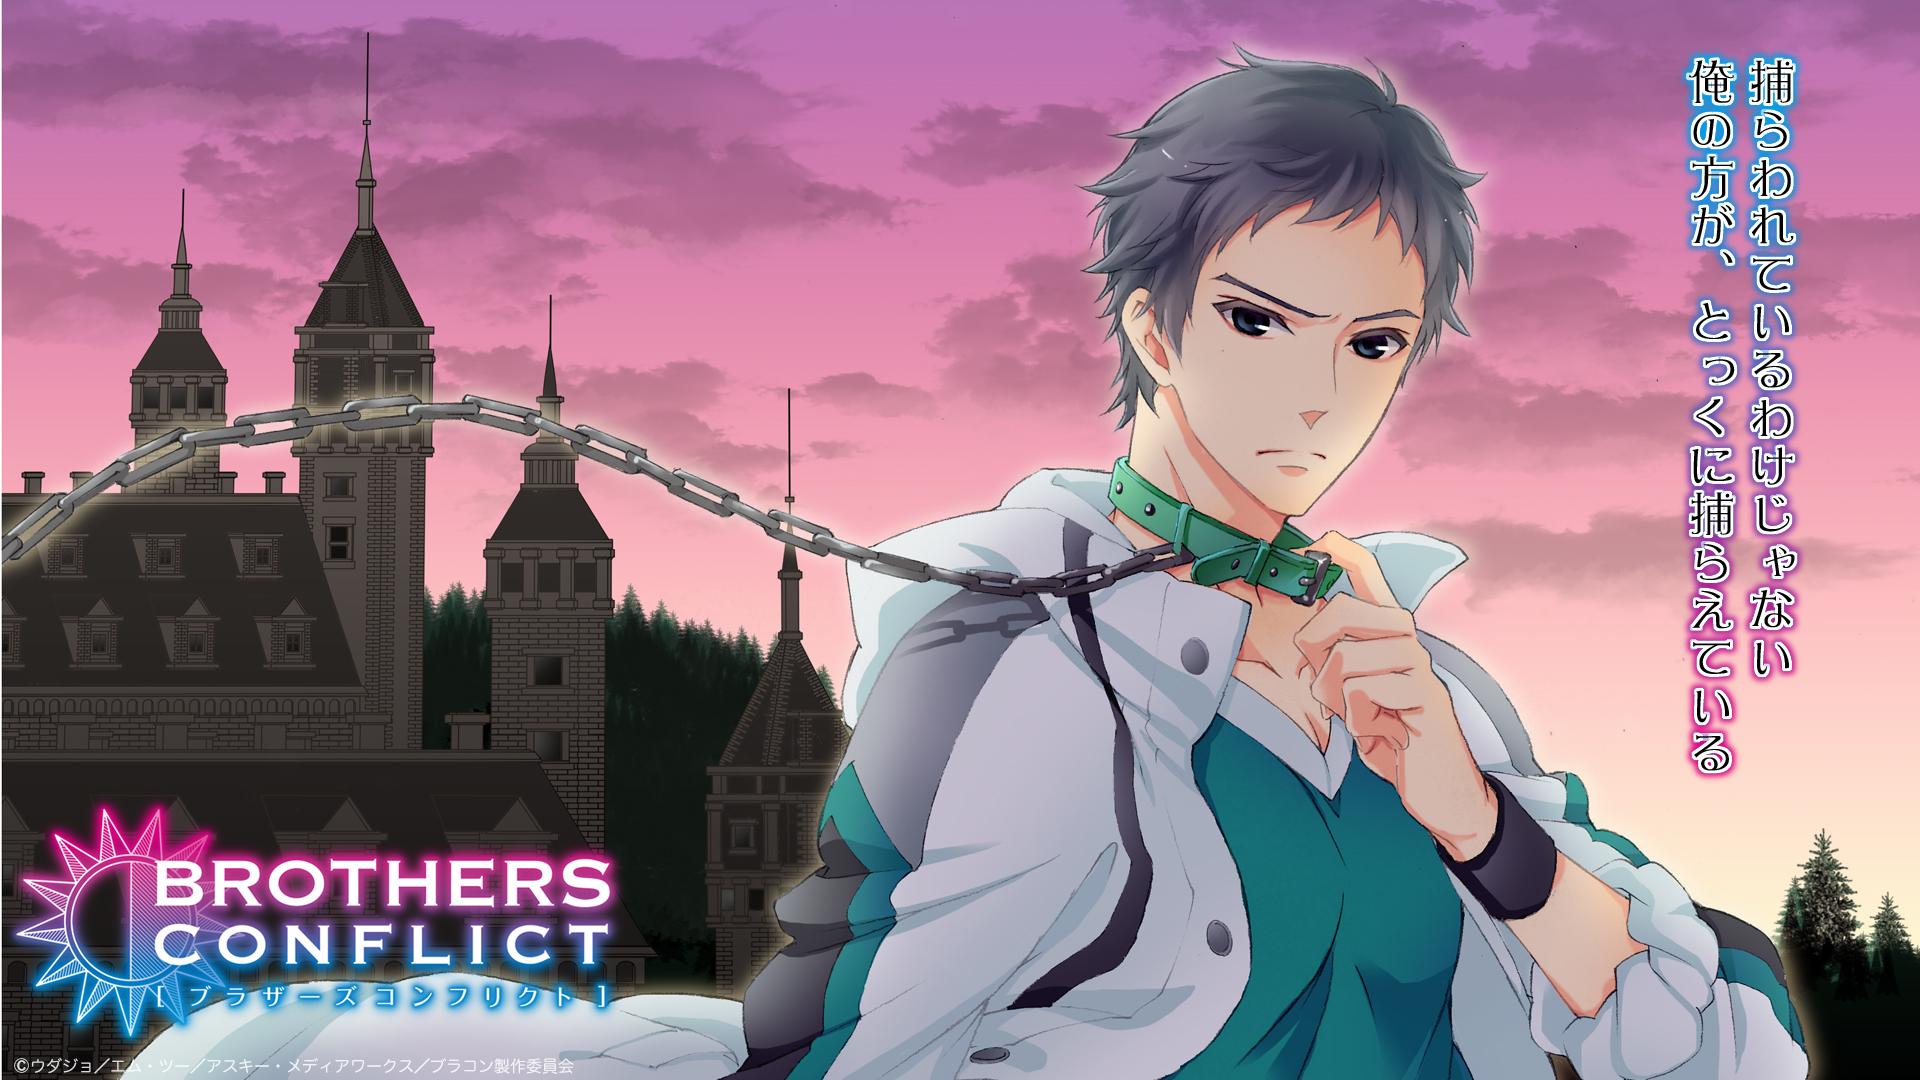 BROTHERS CONFLICT HD Wallpaper Zerochan Anime Image Board